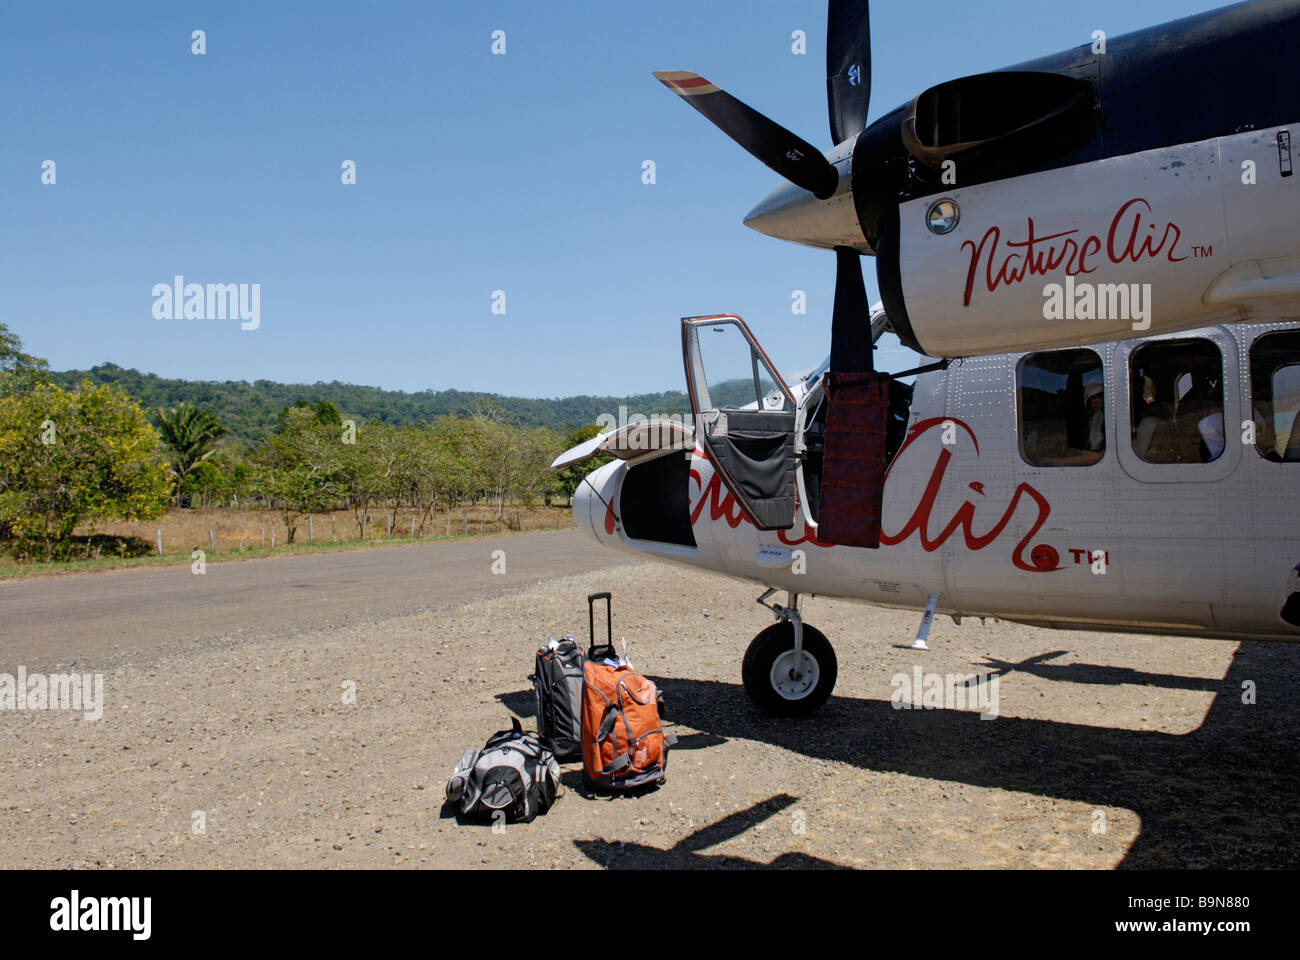 Small Nature Air propeller plane on runway, Drake Bay, Costa Rica. - Stock Image